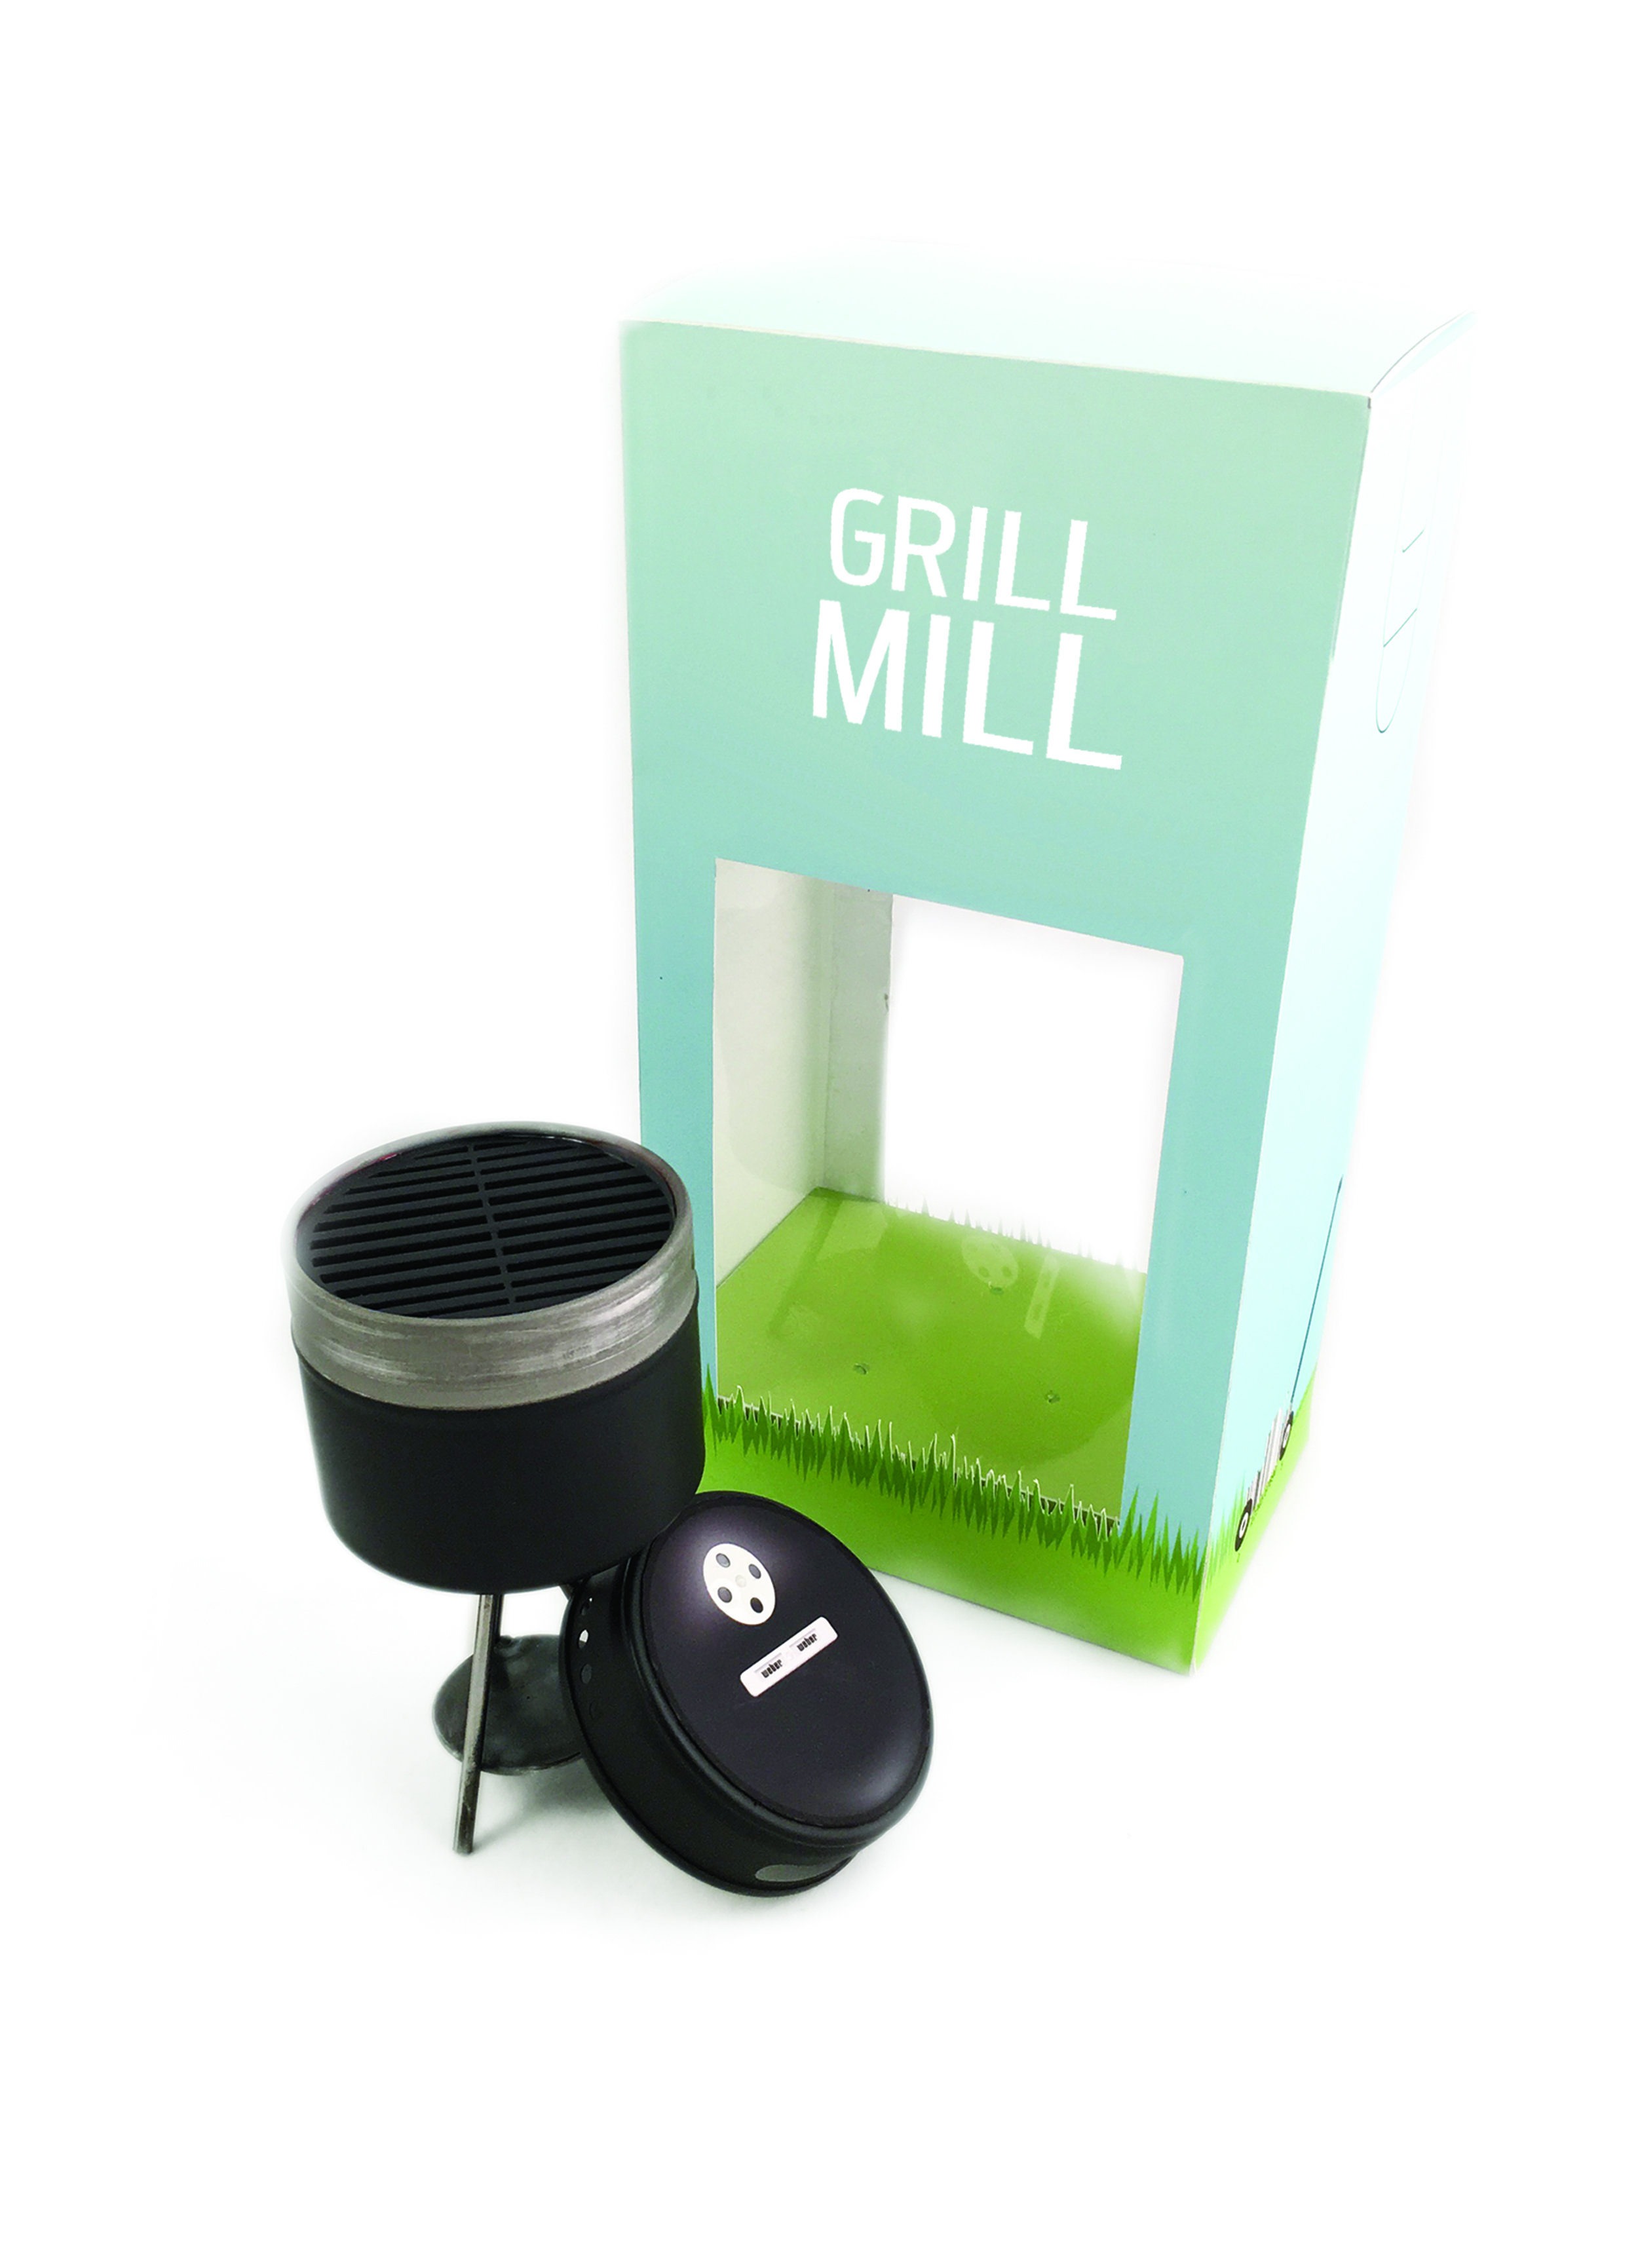 Anderson_Grill_grill-mill_packaging.jpg